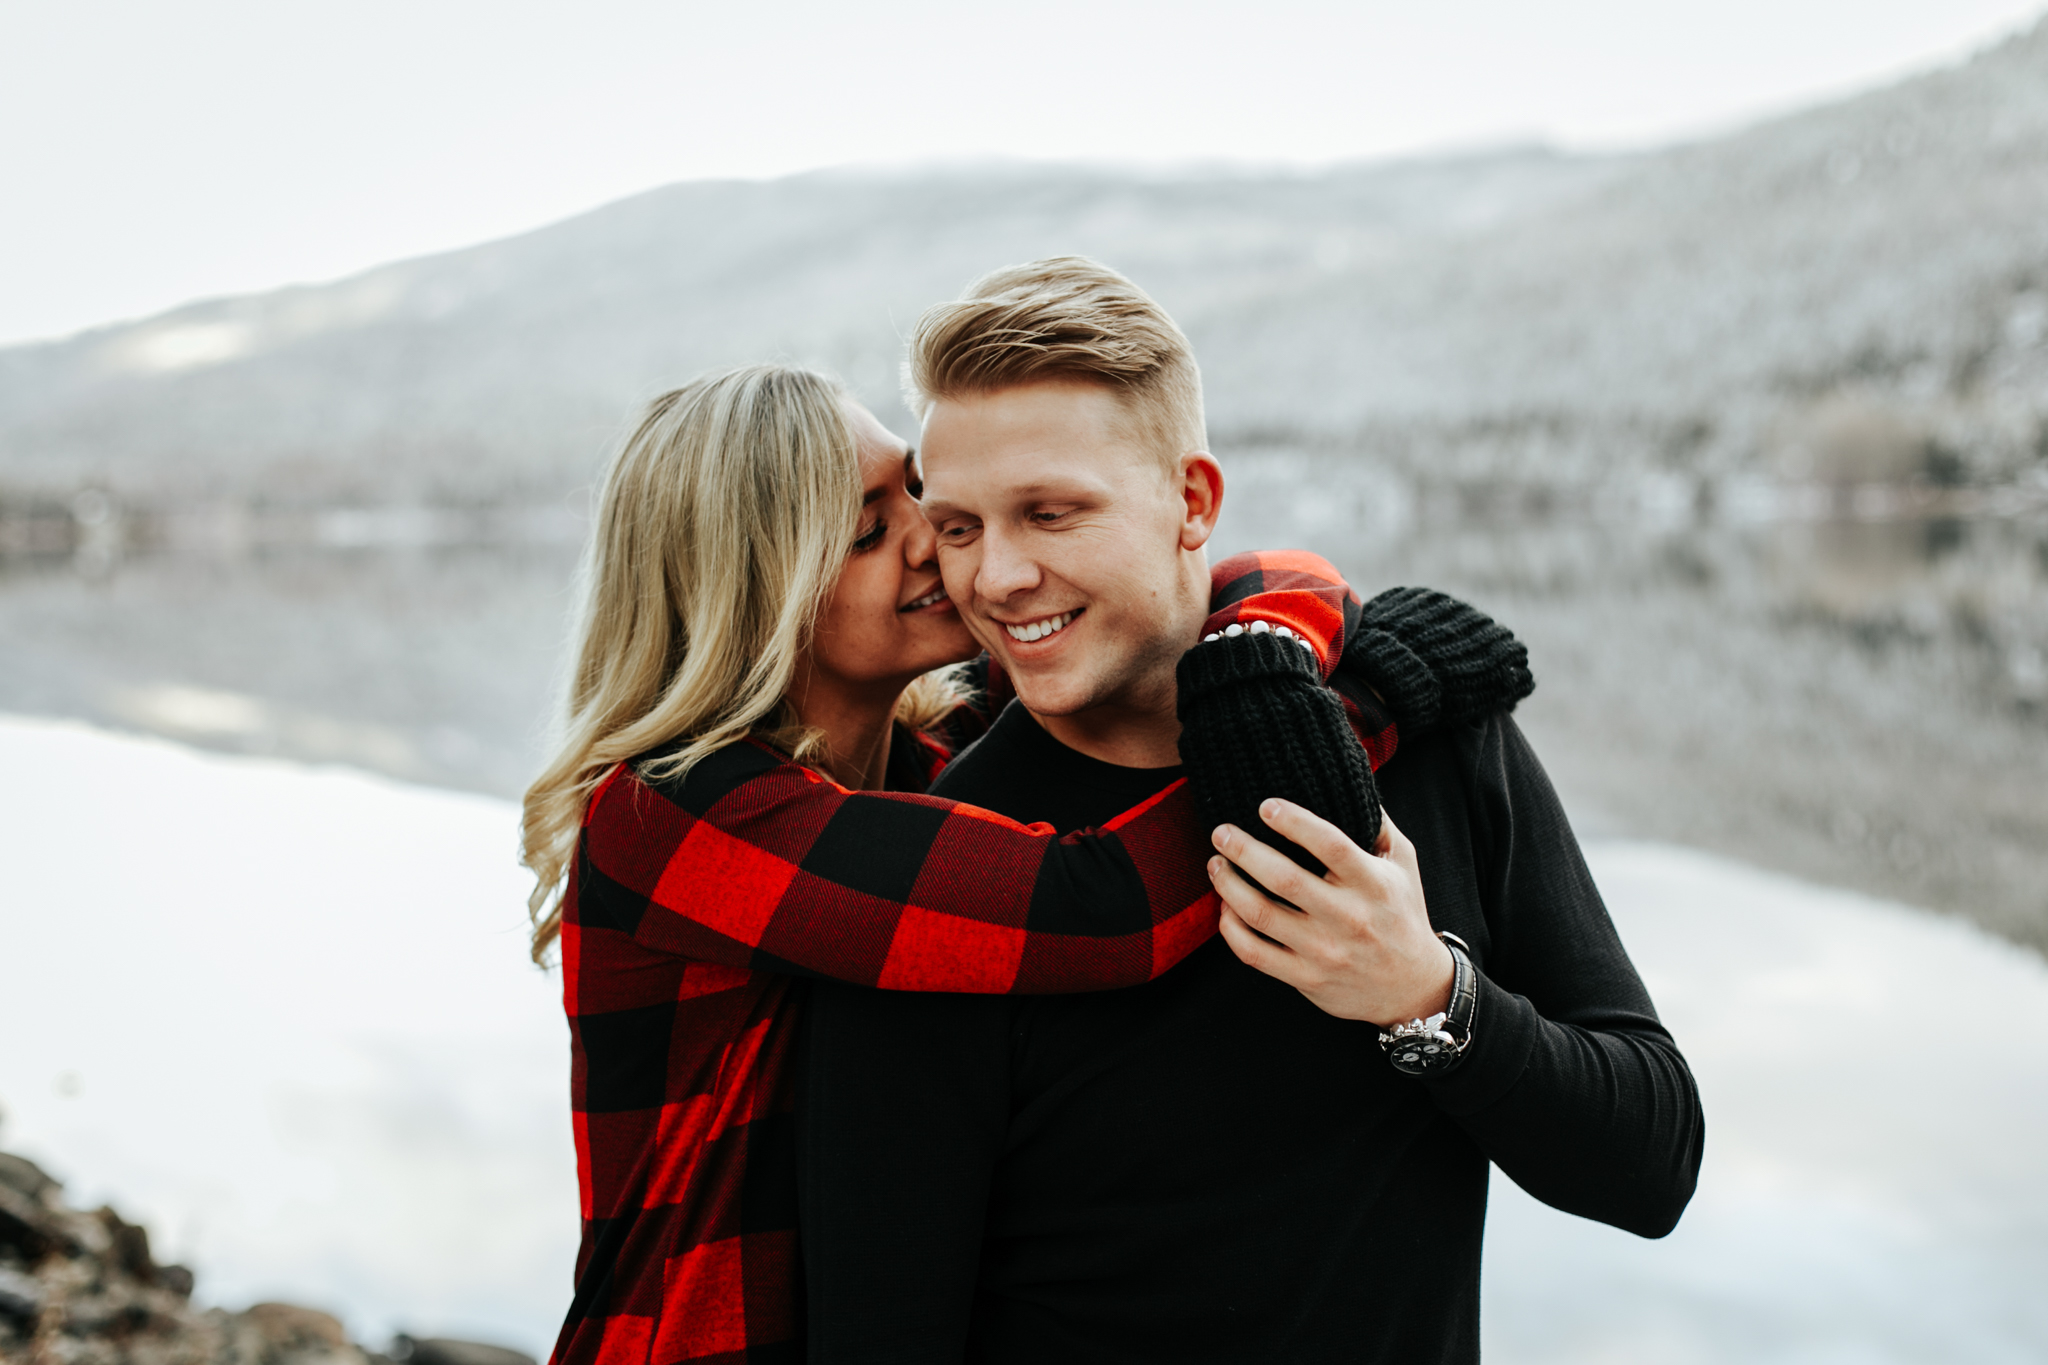 love-and-be-loved-photography-mountain-engagement-ashlyn-rob-perfect-fit-4-u-photo-image-picture-56.jpg